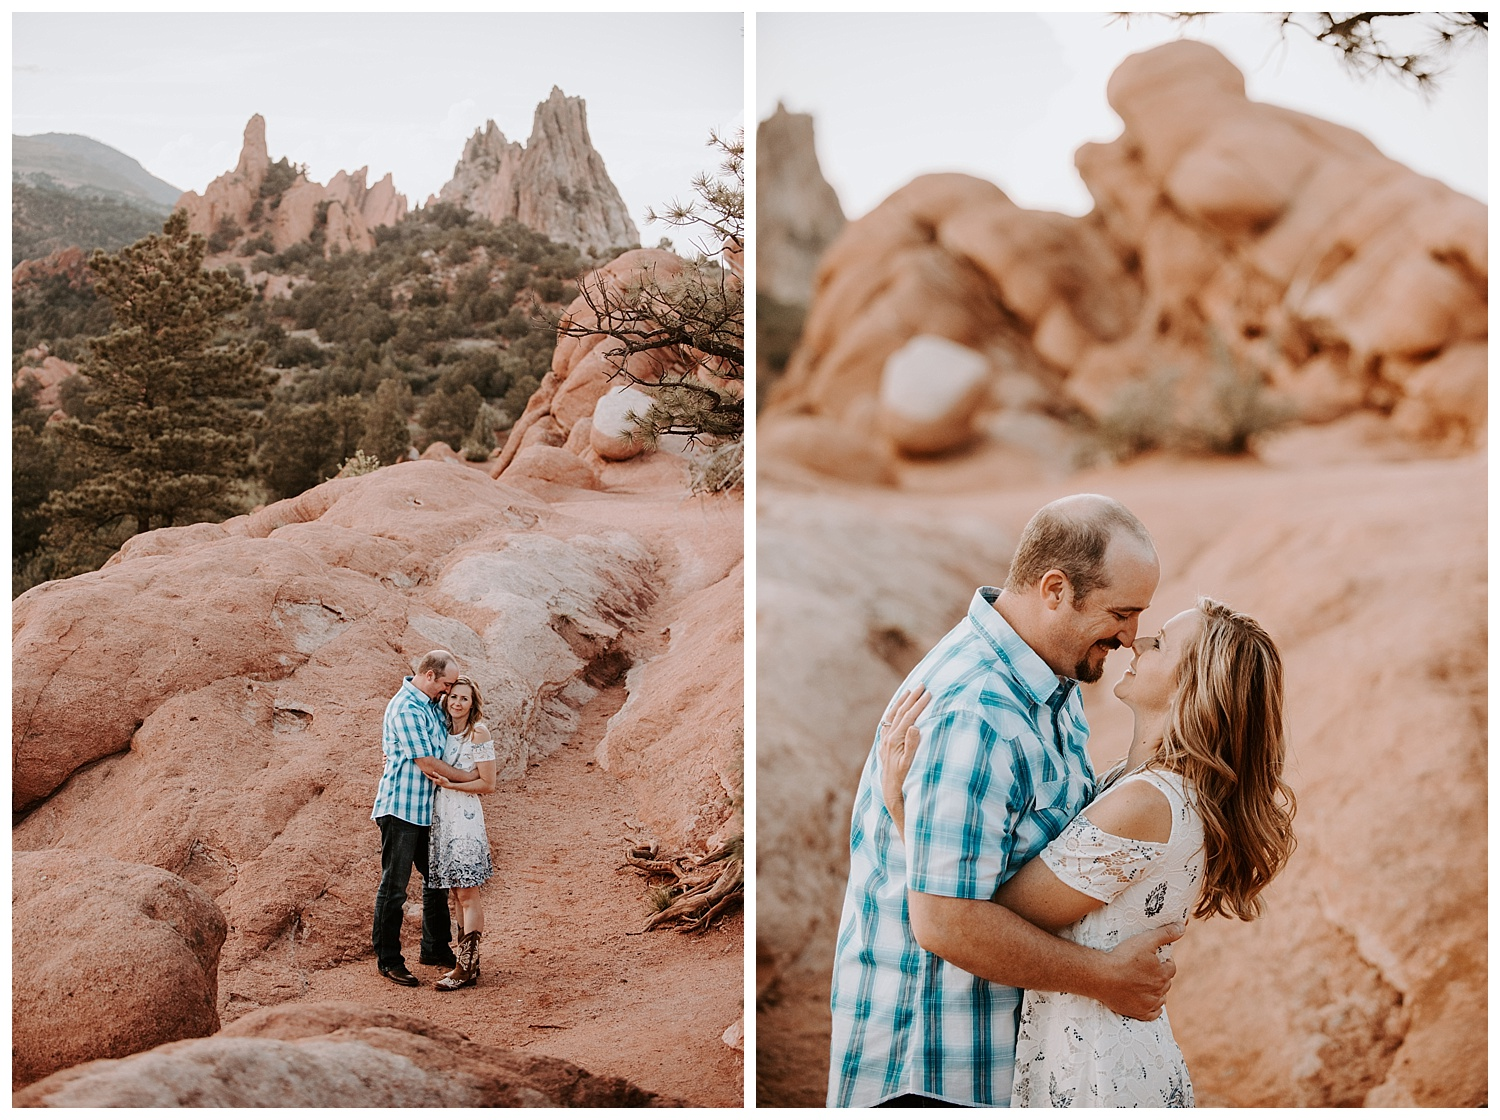 Garden_of_the_Gods_Engagement_Session_Colorado_Springs_Apollo_Fields_02.jpg